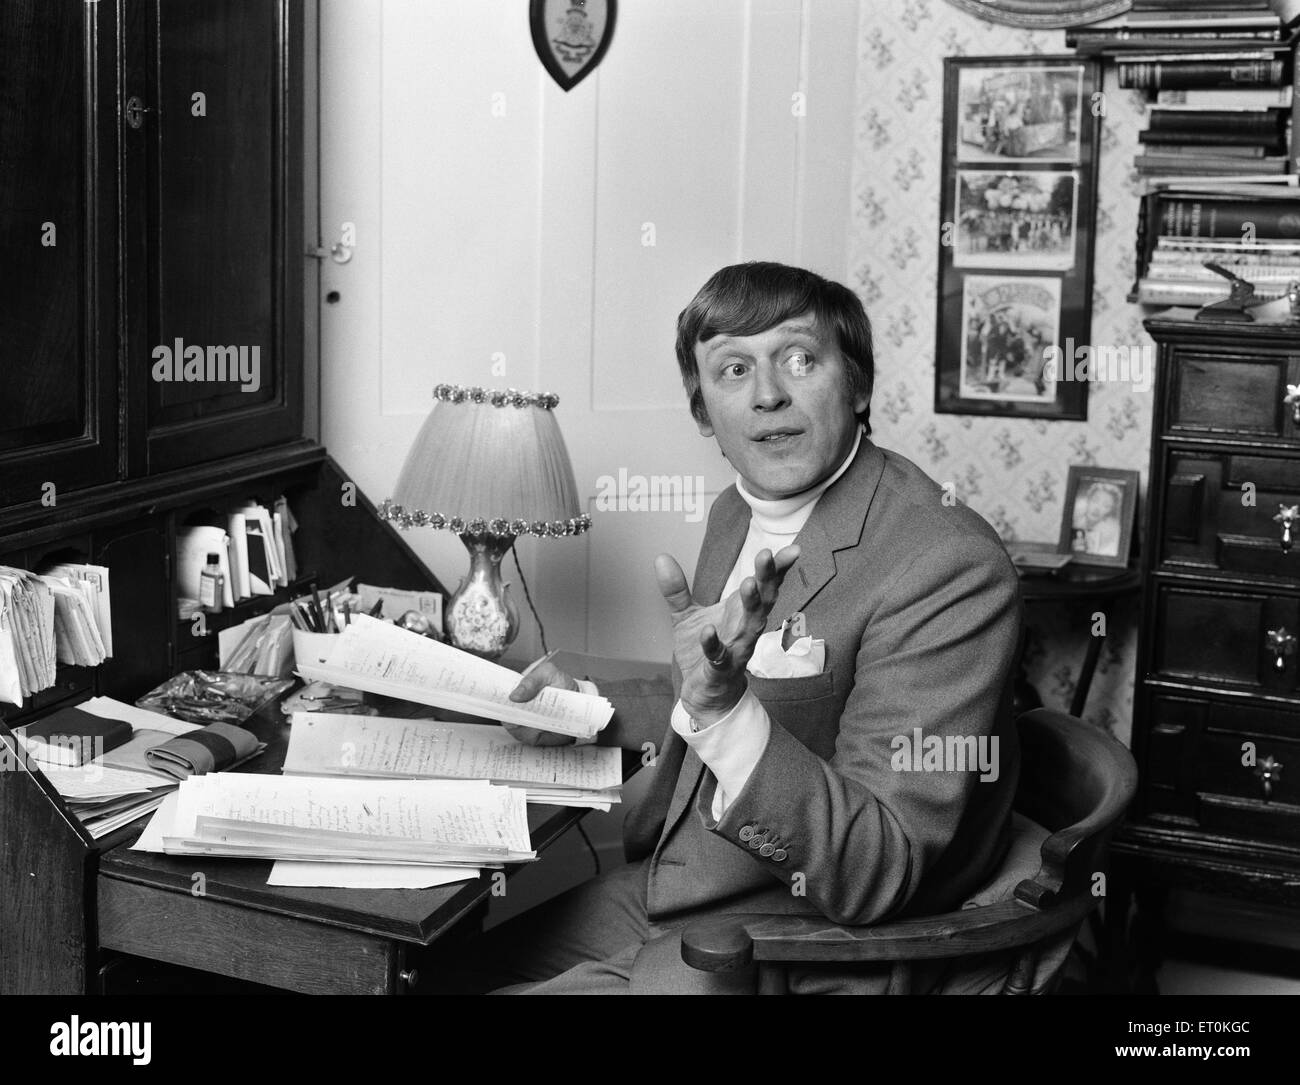 Jimmy Perry, Scriptwriter, pictured working on Dads Army scripts, at home in Westminster, London, 9th April 1969. - Stock Image